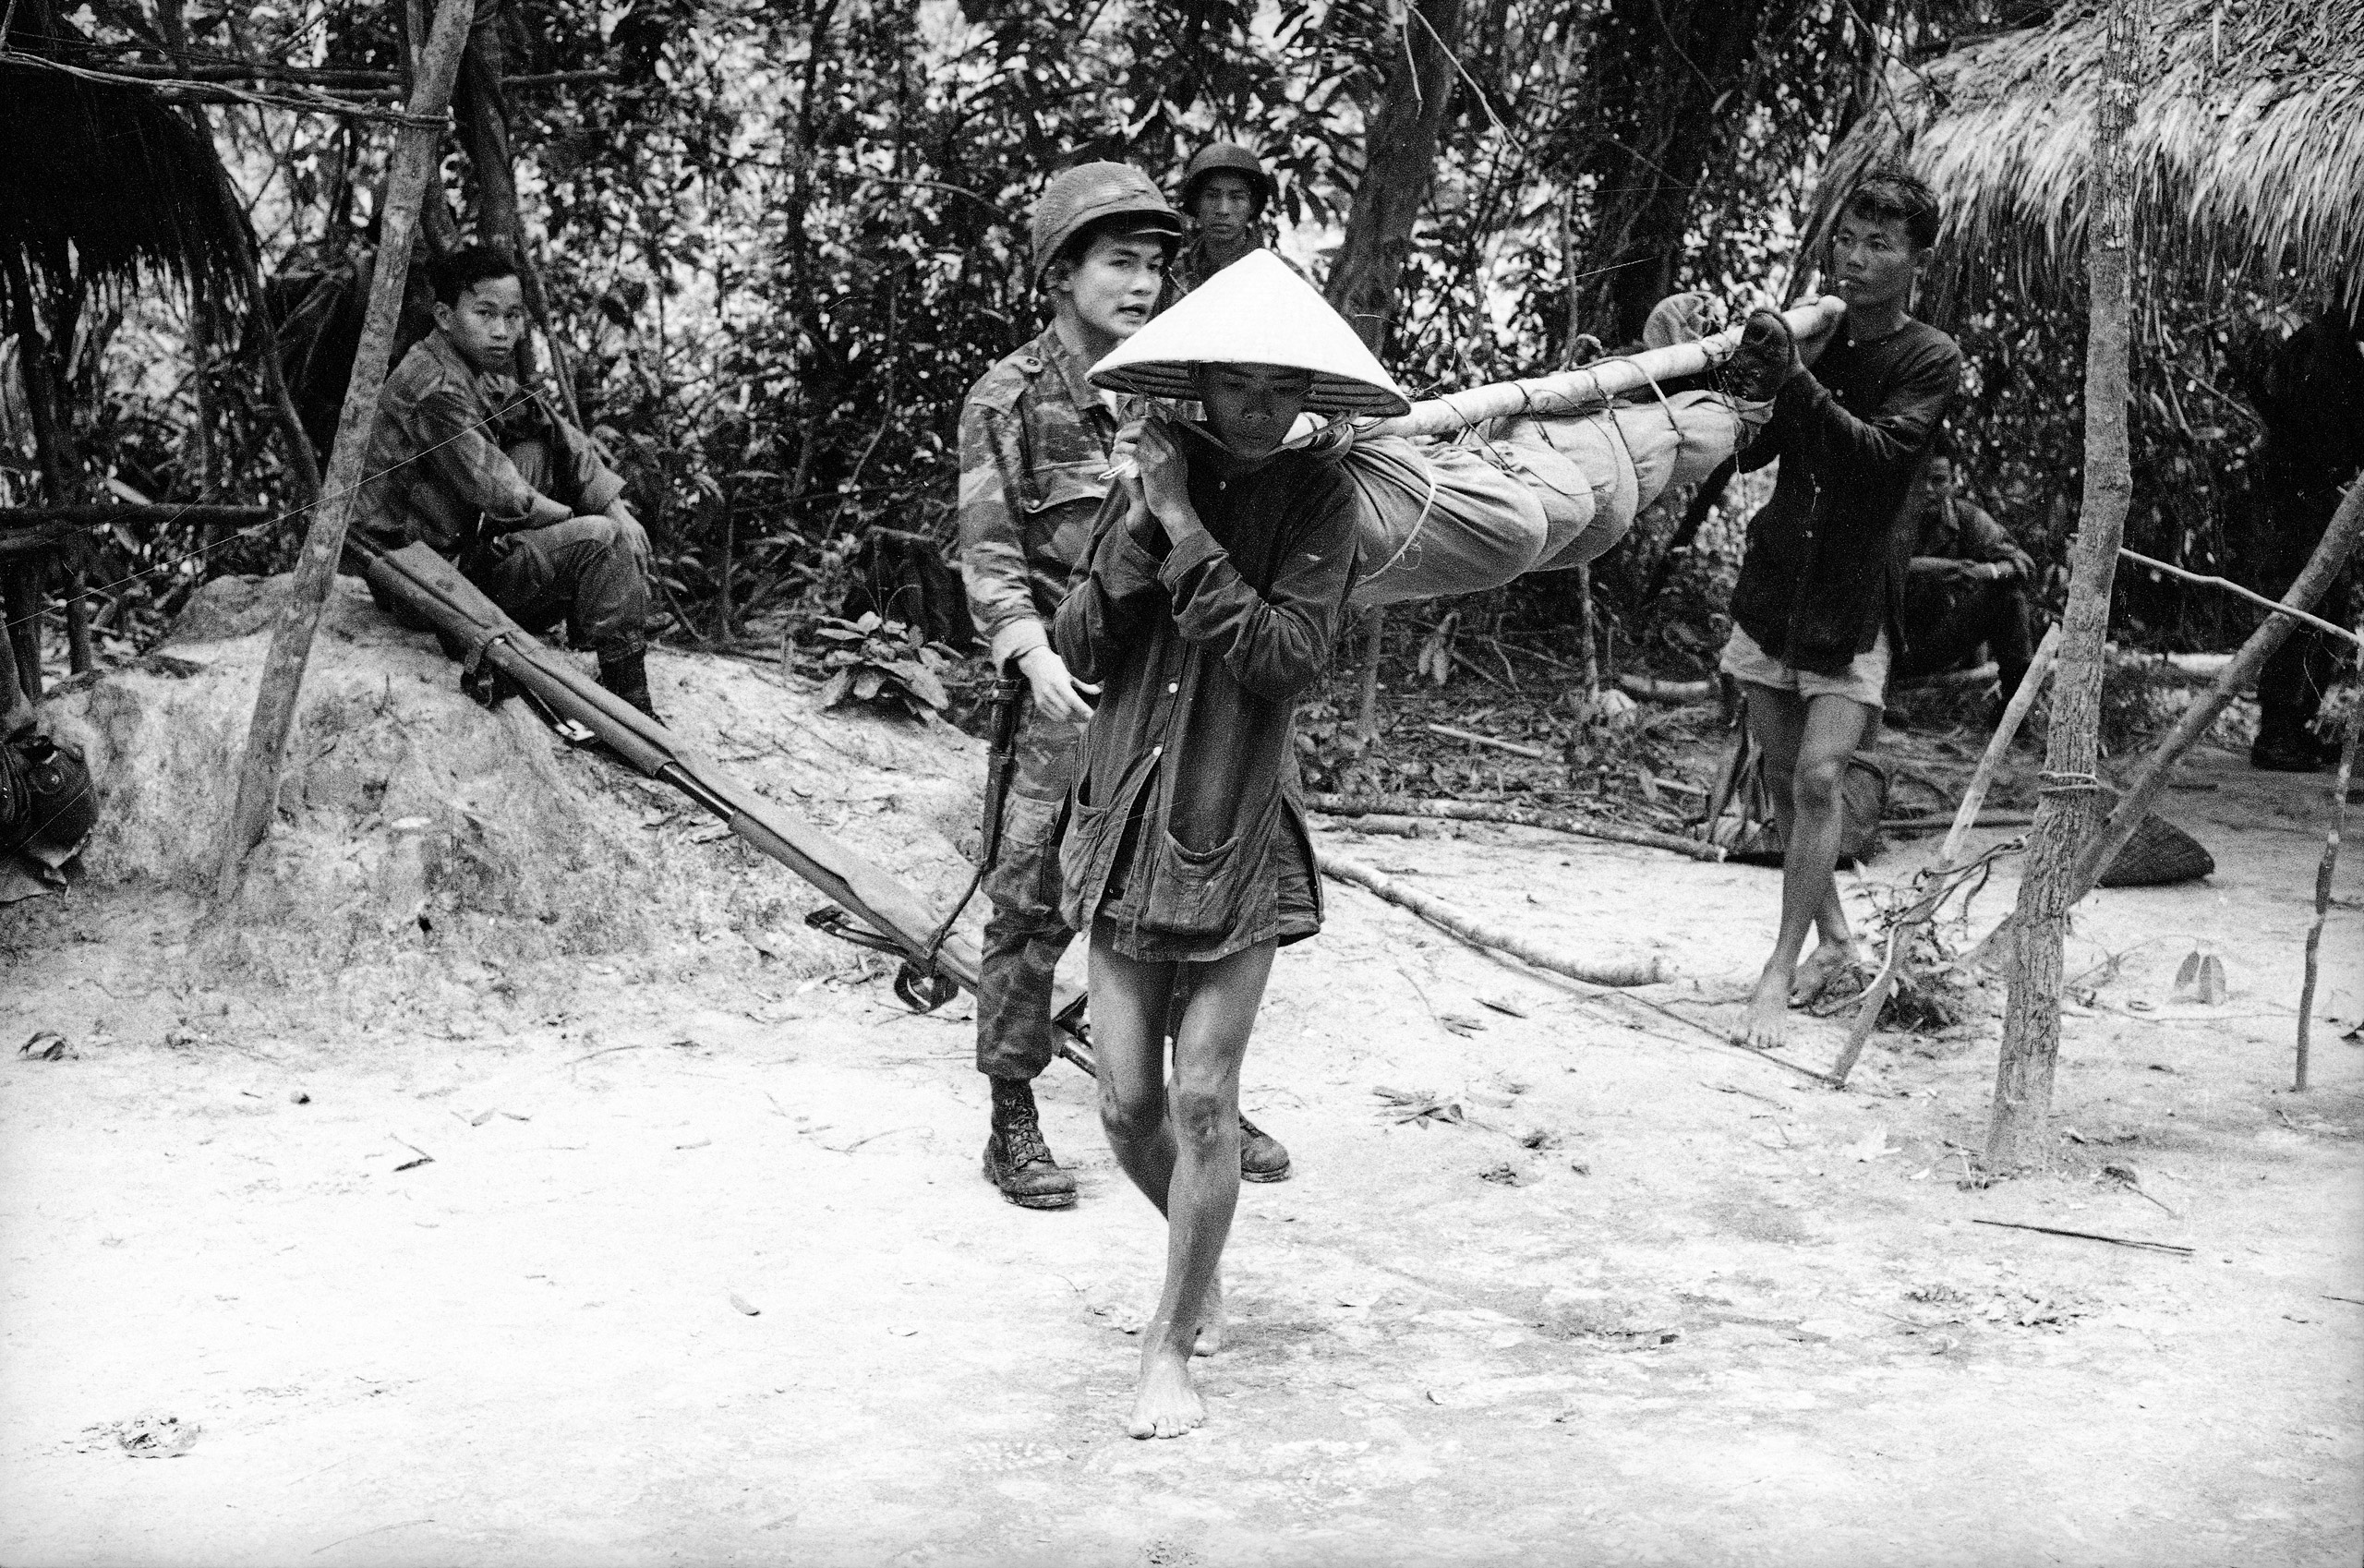 Villagers carry the body of fallen soldier, ca. 1961-62.